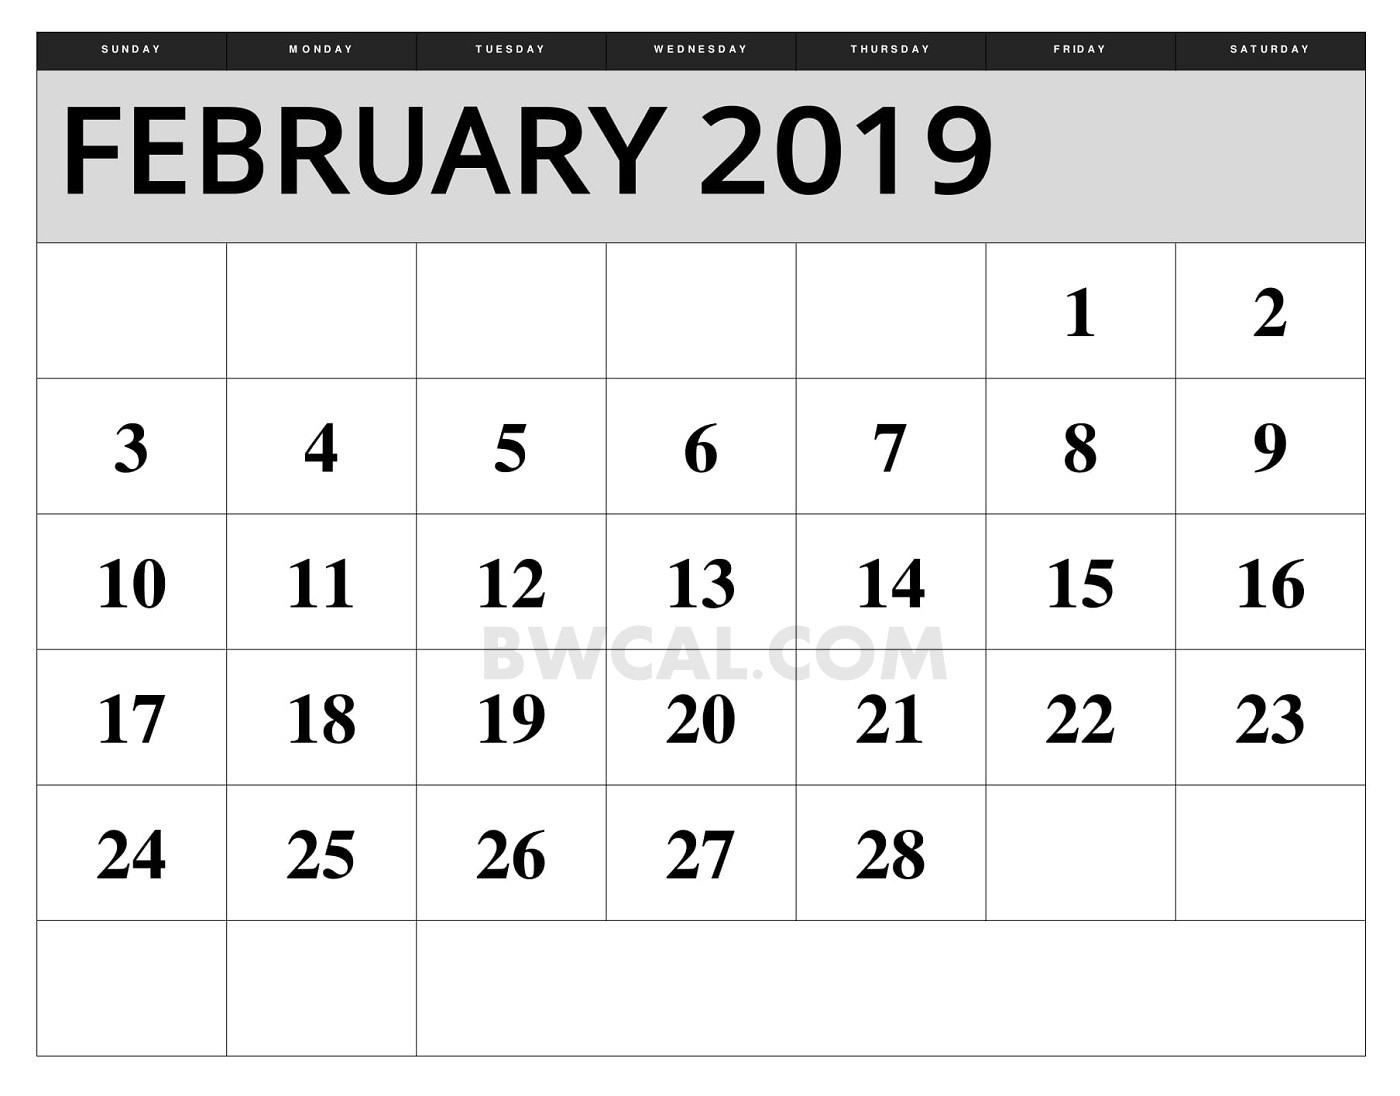 february 2019 calendar with holidays weekly printable striking::February 2019 Calendar Template Printable